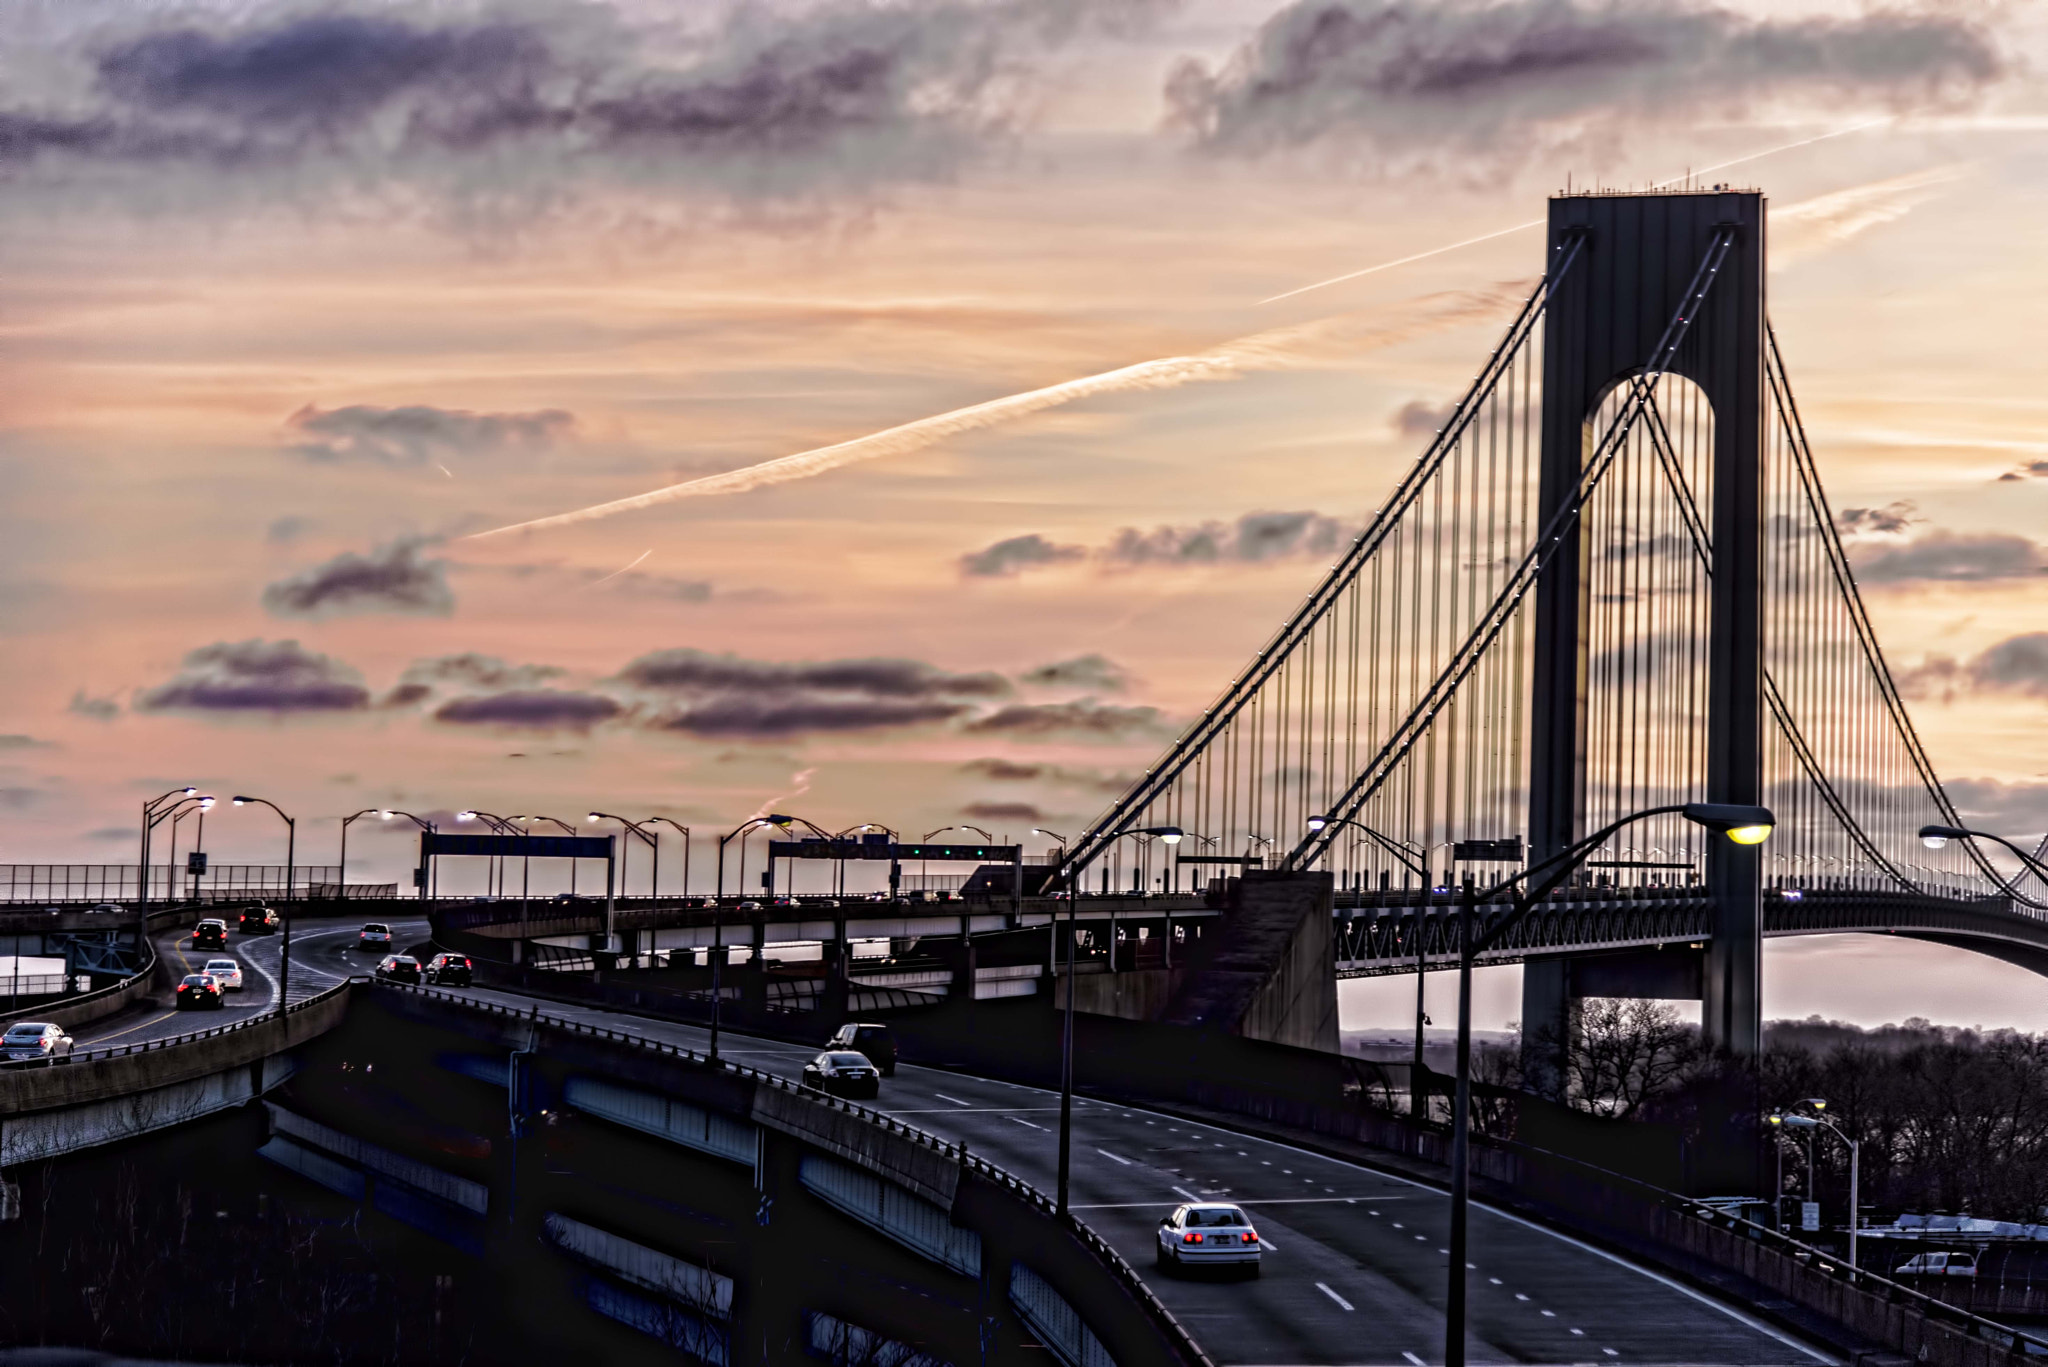 Photograph Verrazano2 by Bill Sherman on 500px